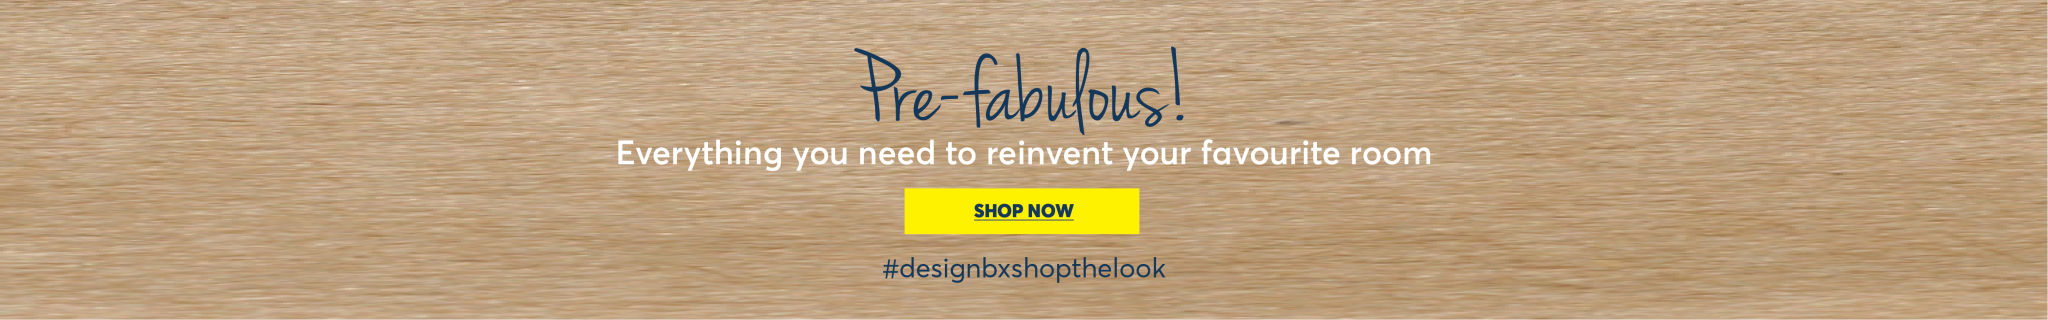 Designbx - Shop The Look now!